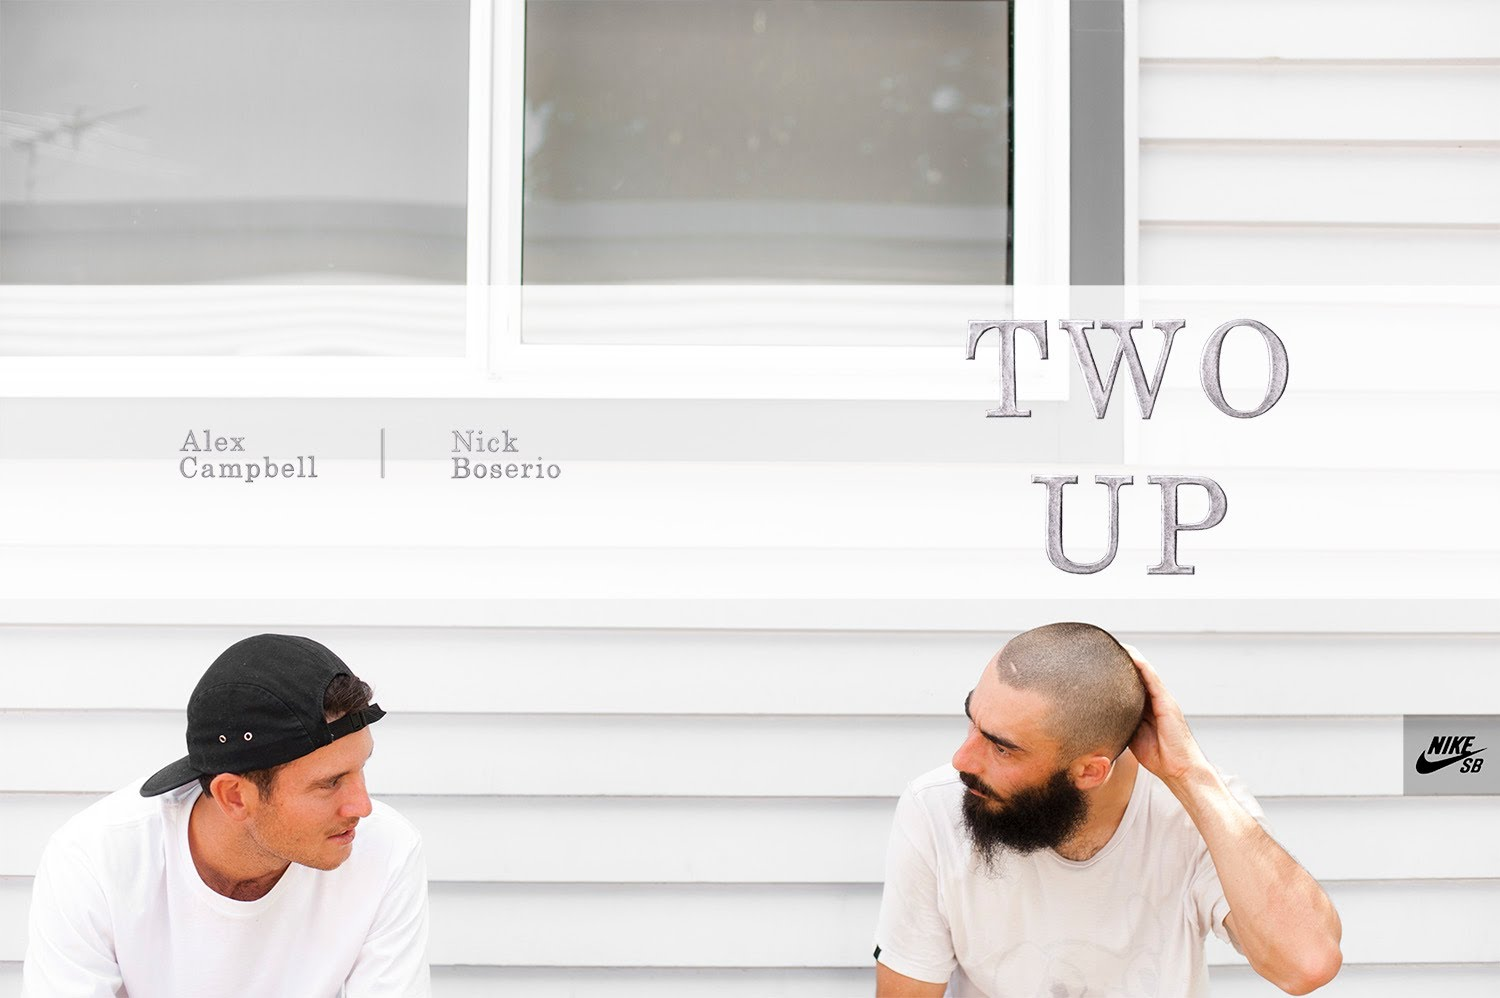 Nike SB Australia – Two Up with Nick Boserio and Alex Campbell